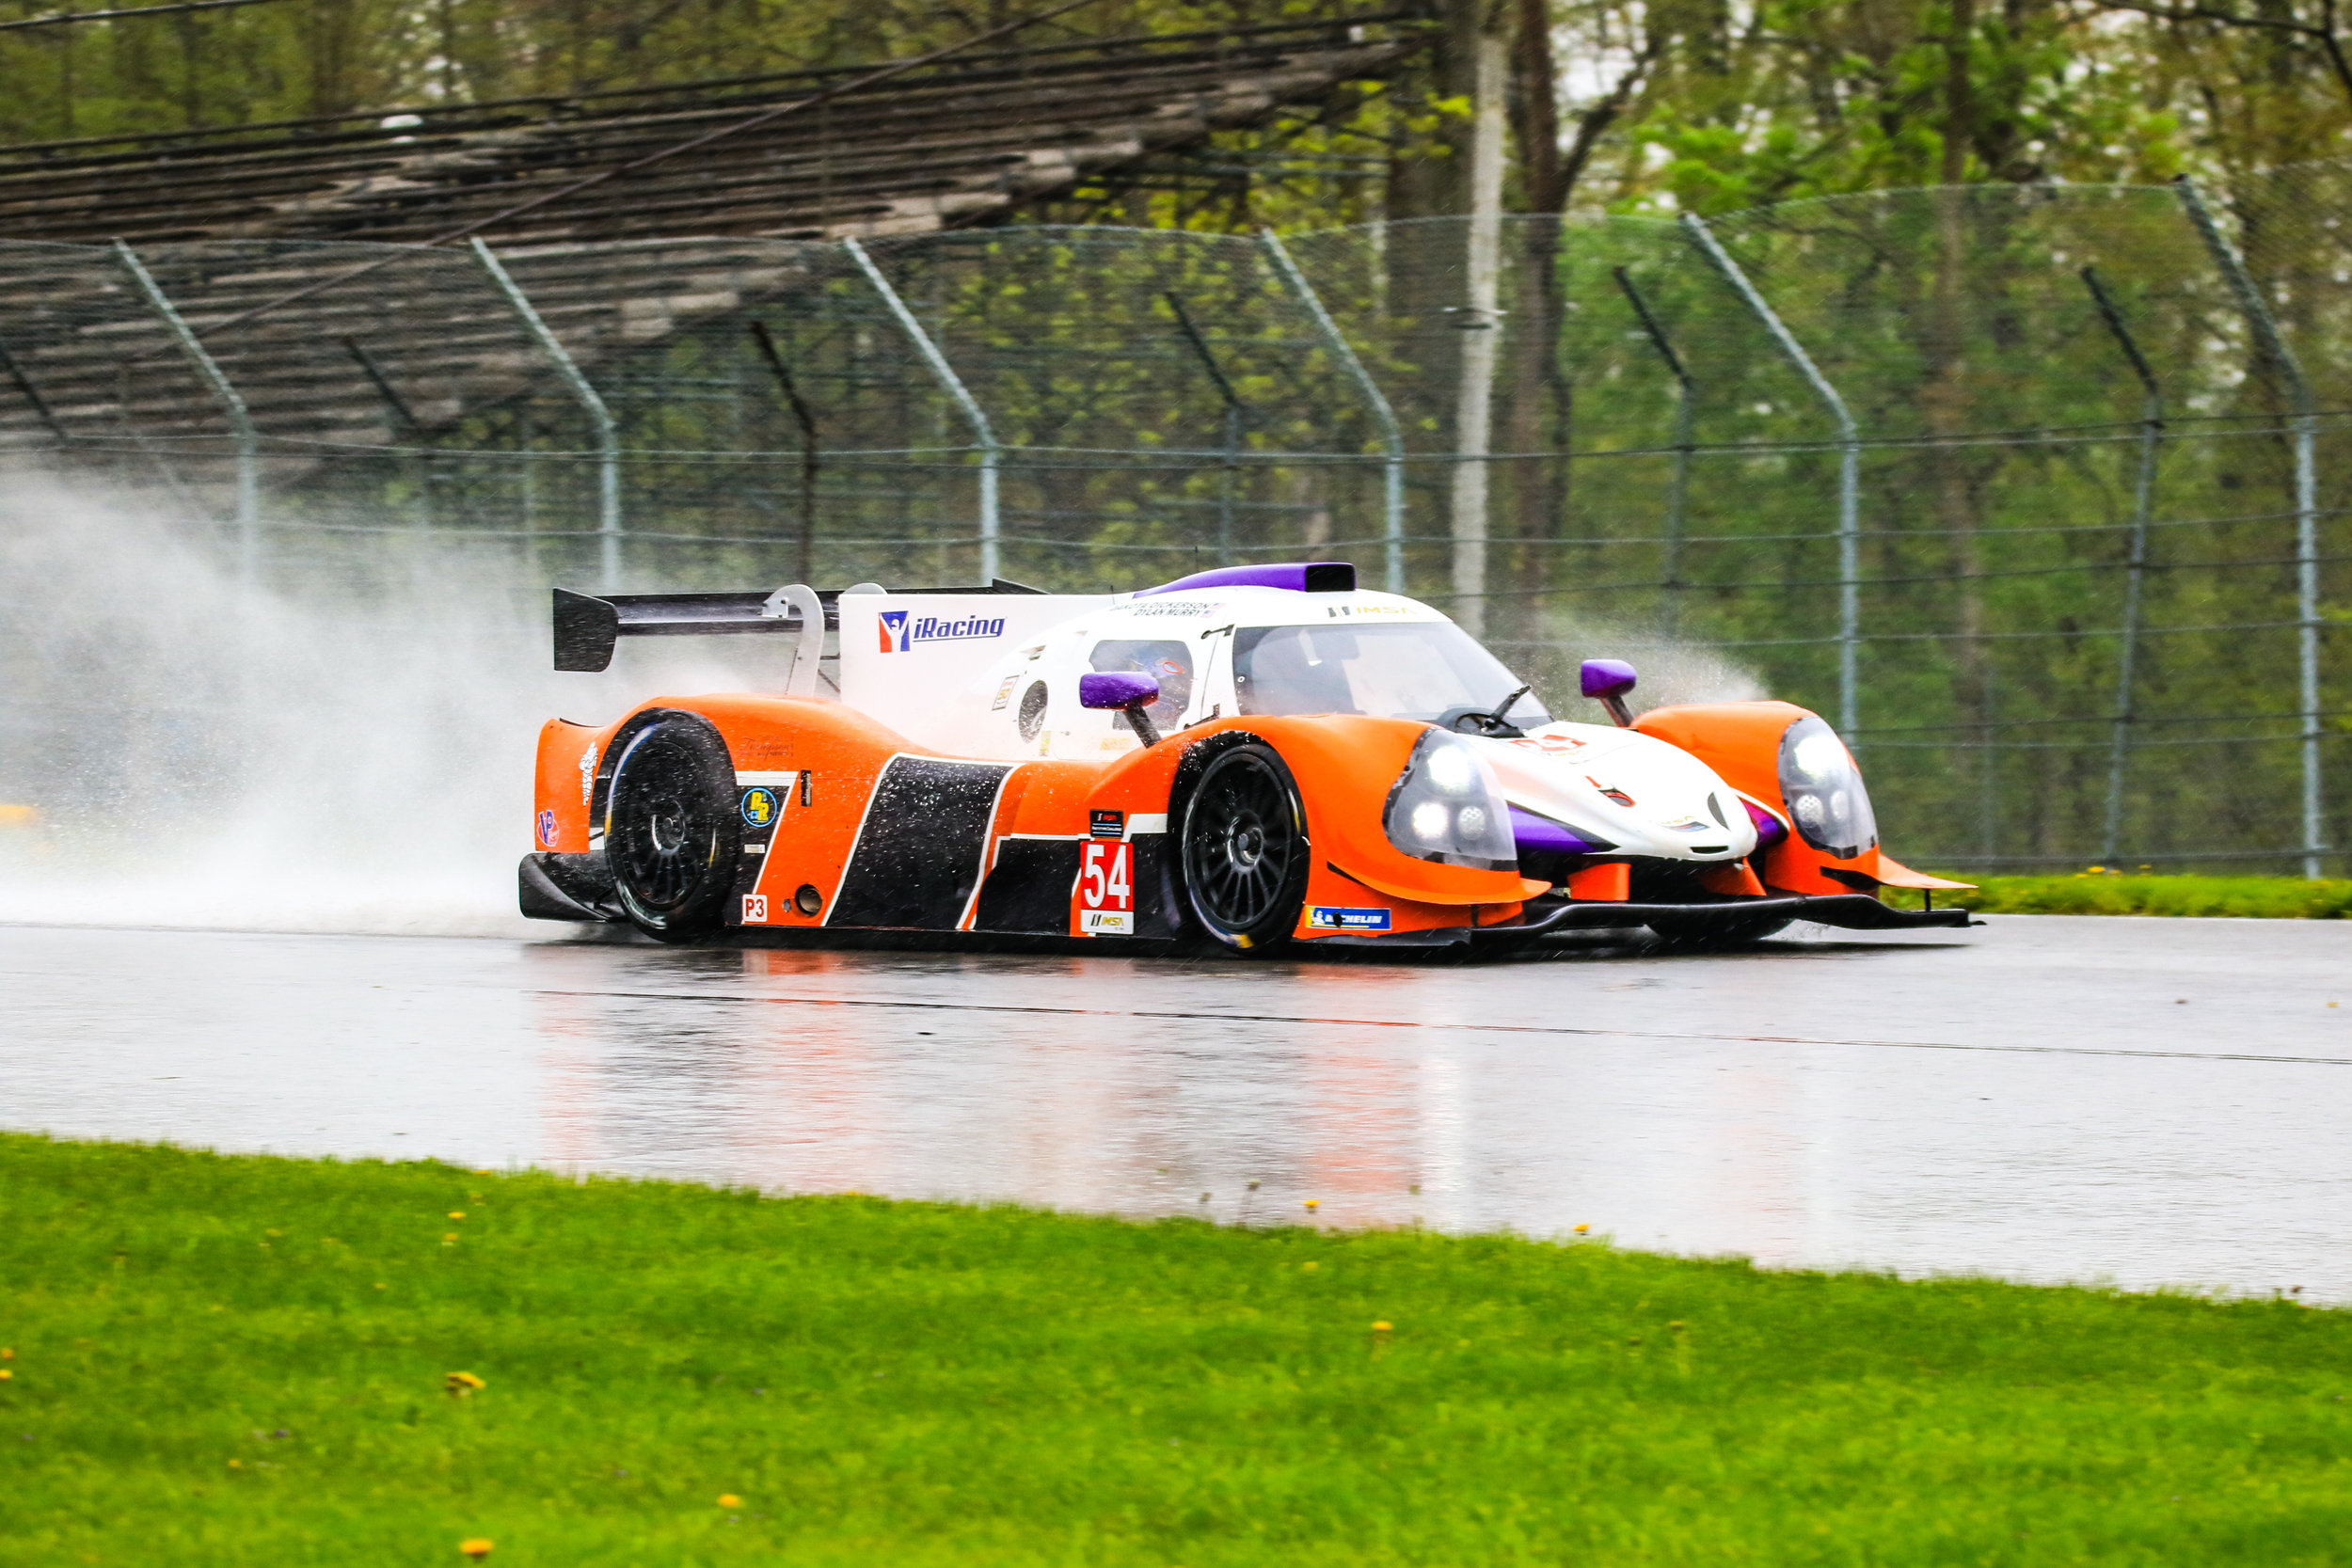 Dickerson racing throught the rain in his Ligier JSP3 at Mid Ohio SportsCar Course.